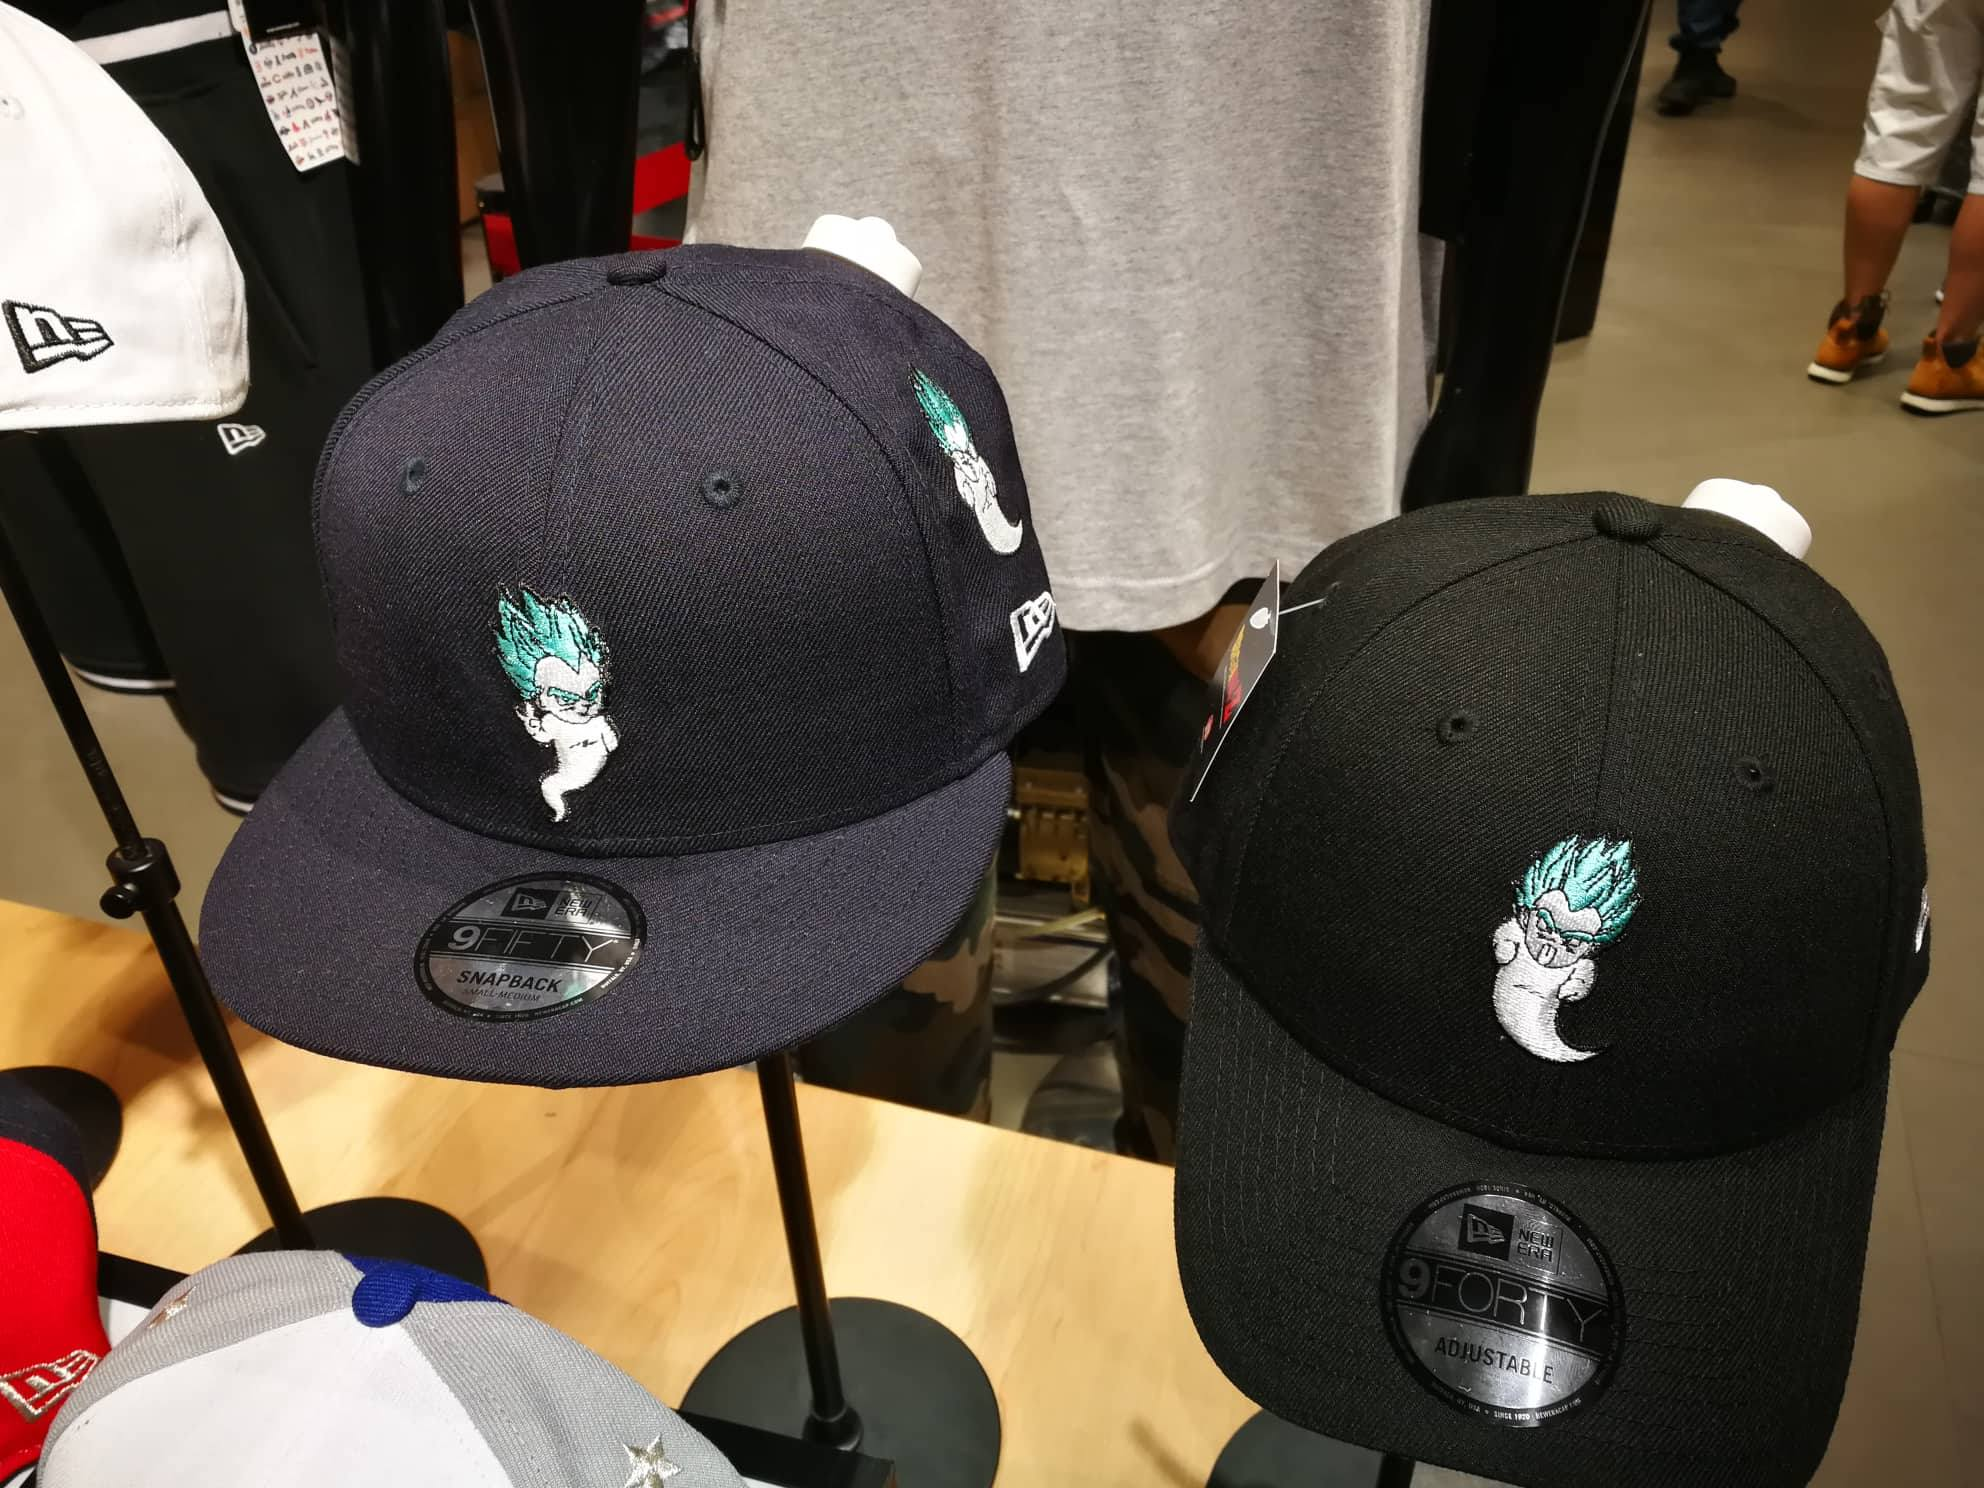 3c7be8d42f026 More Dragon Ball Z x New Era caps are available in stores now!